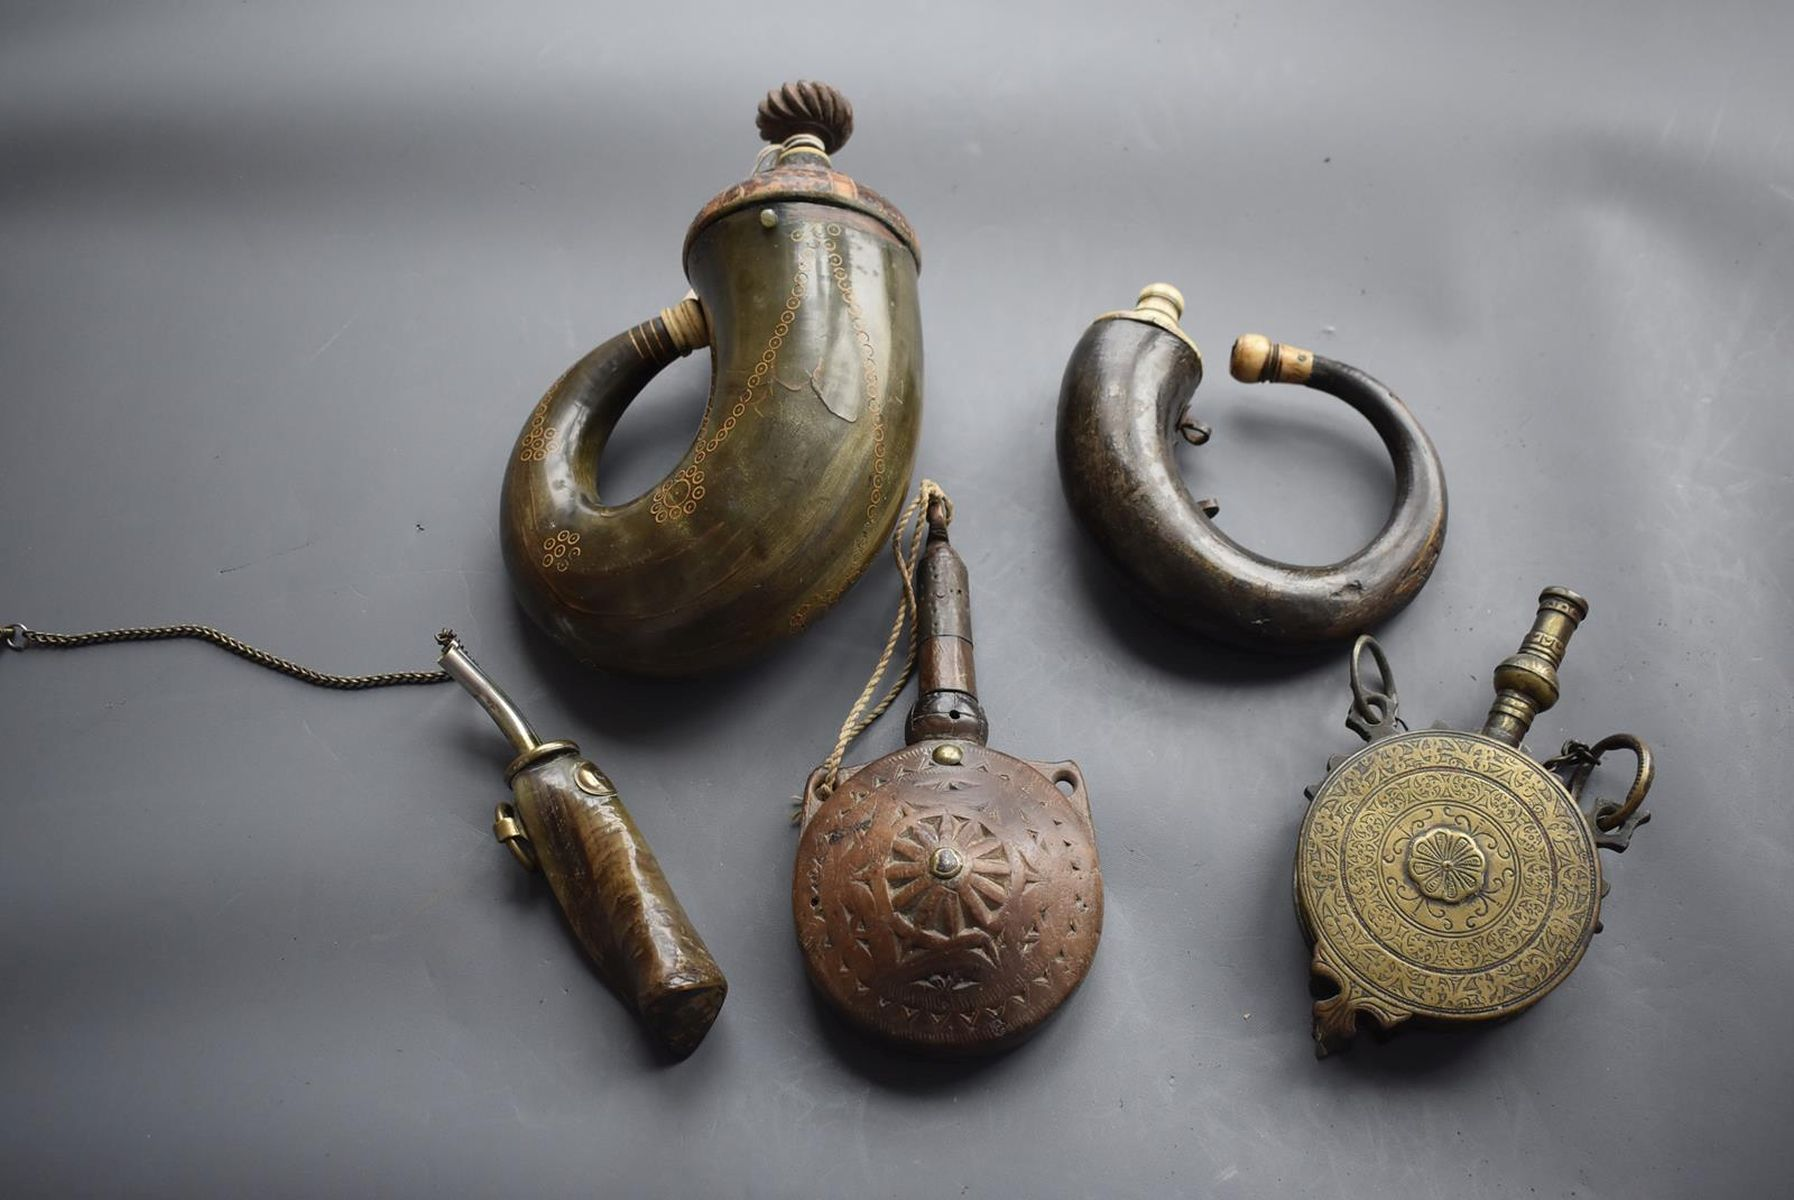 A 19TH CENTURY OTTOMAN POWDER HORN, of characteristic curling form, together with another similar - Image 2 of 8